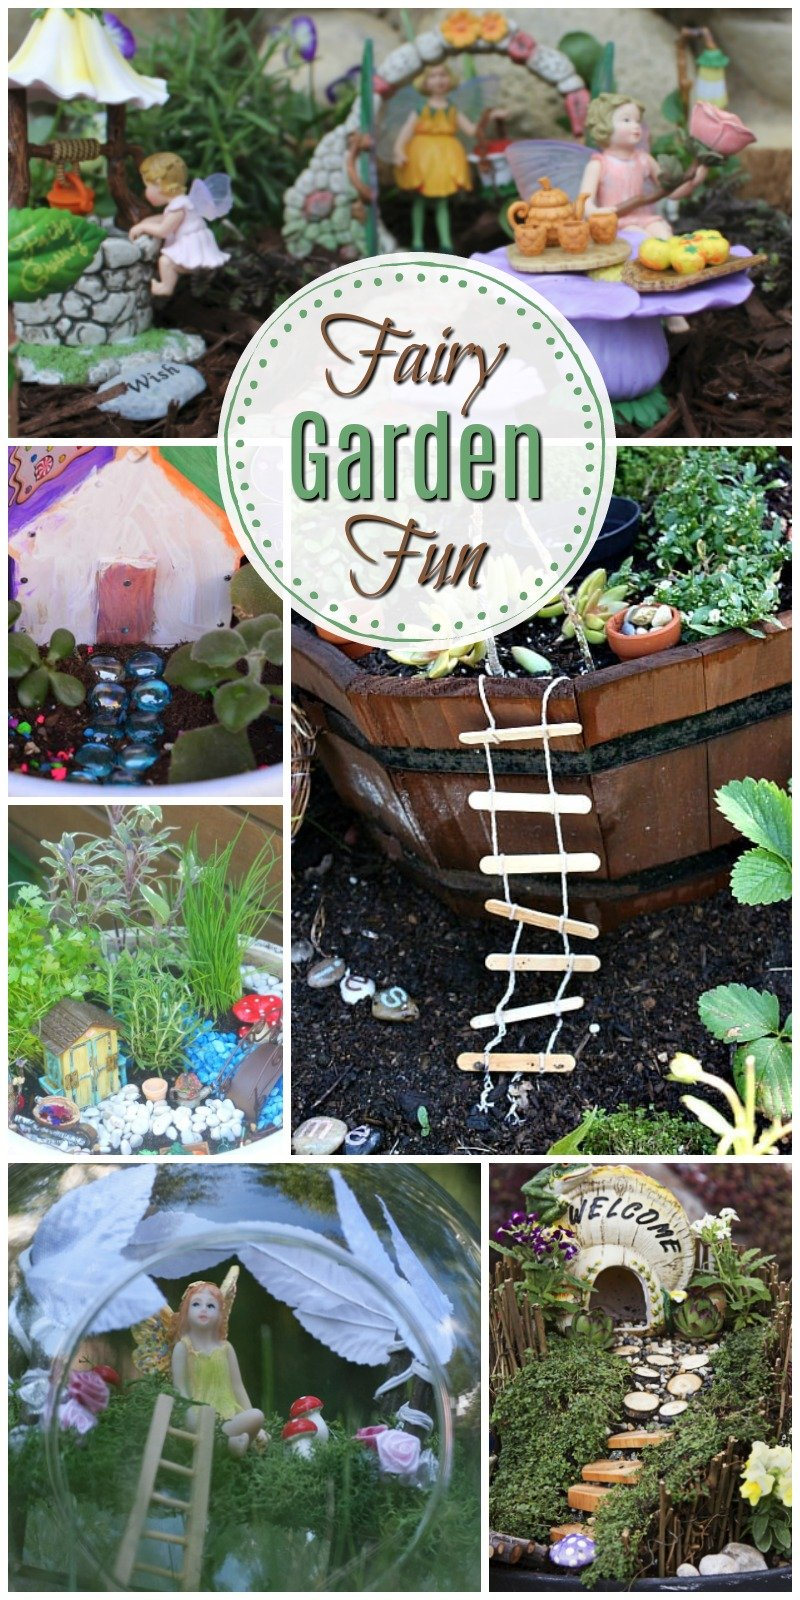 These adorable fairy garden ideas will definitely impress anyone who sees! Check out how to make a darling DIY Fairy Garden for indoors or outdoors! #fairygarden #fairyhouses || Design Dazzle